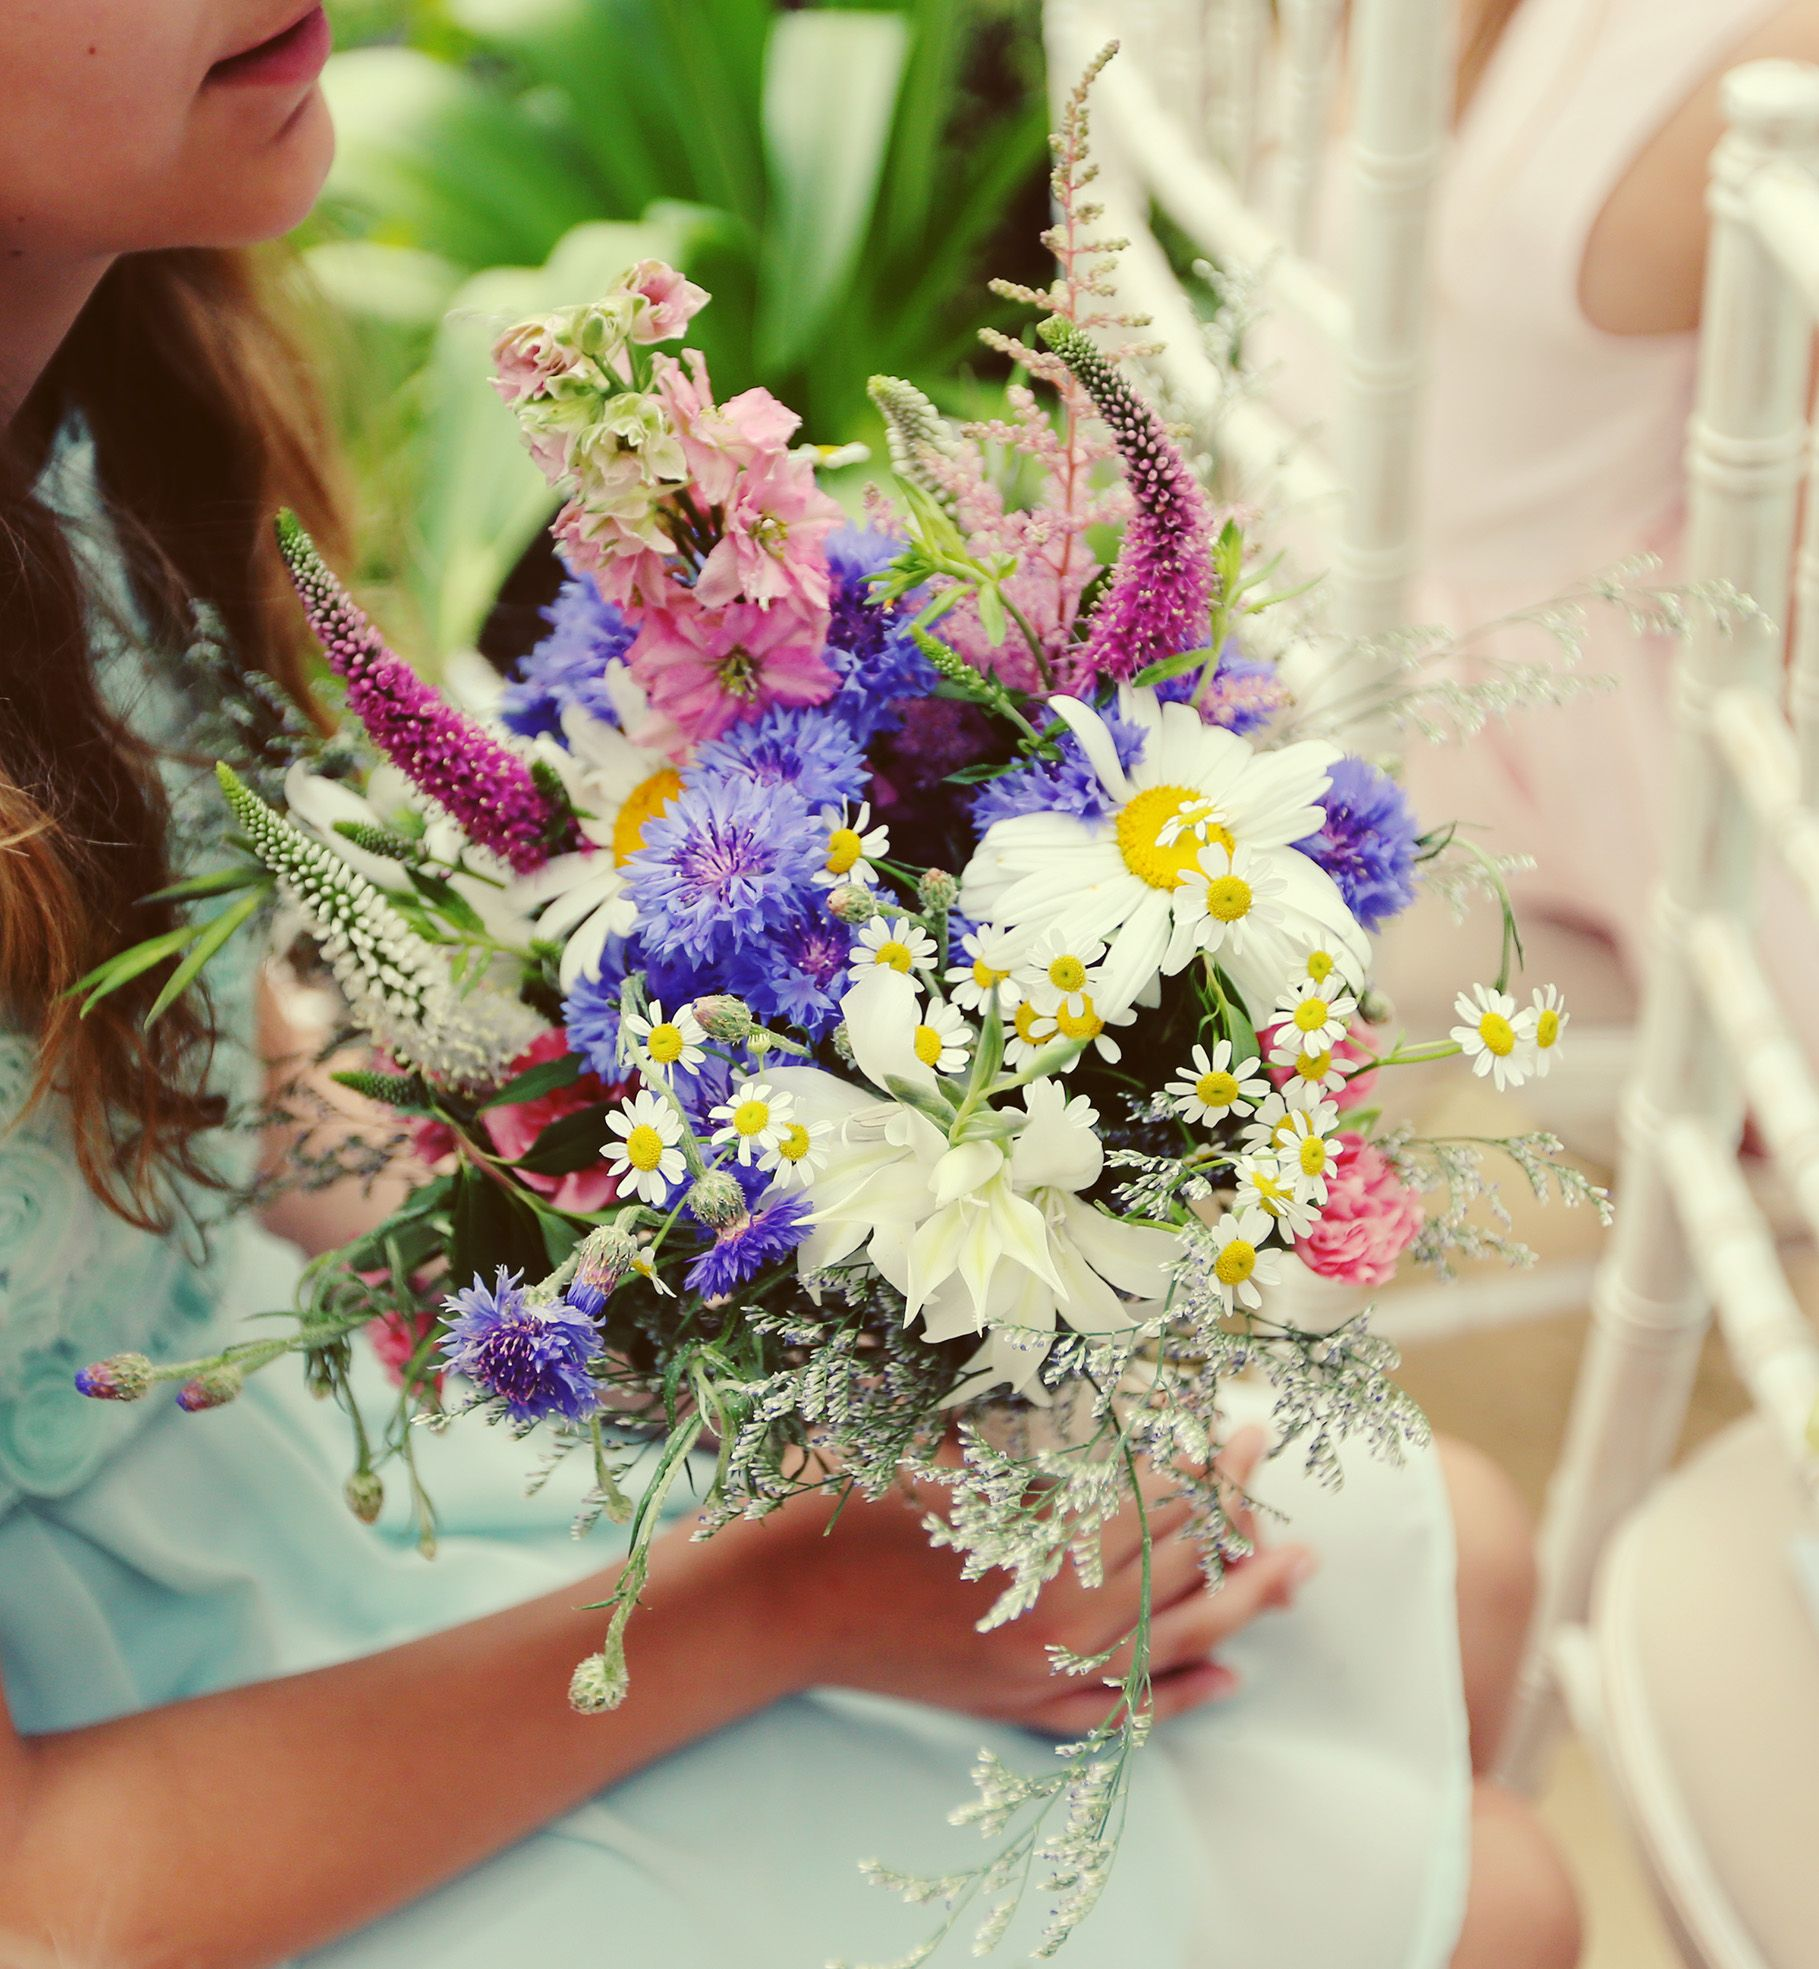 Grow Your Own Wedding Flowers: Bridesmaids Bouquet Of English Cottage Garden Flowers